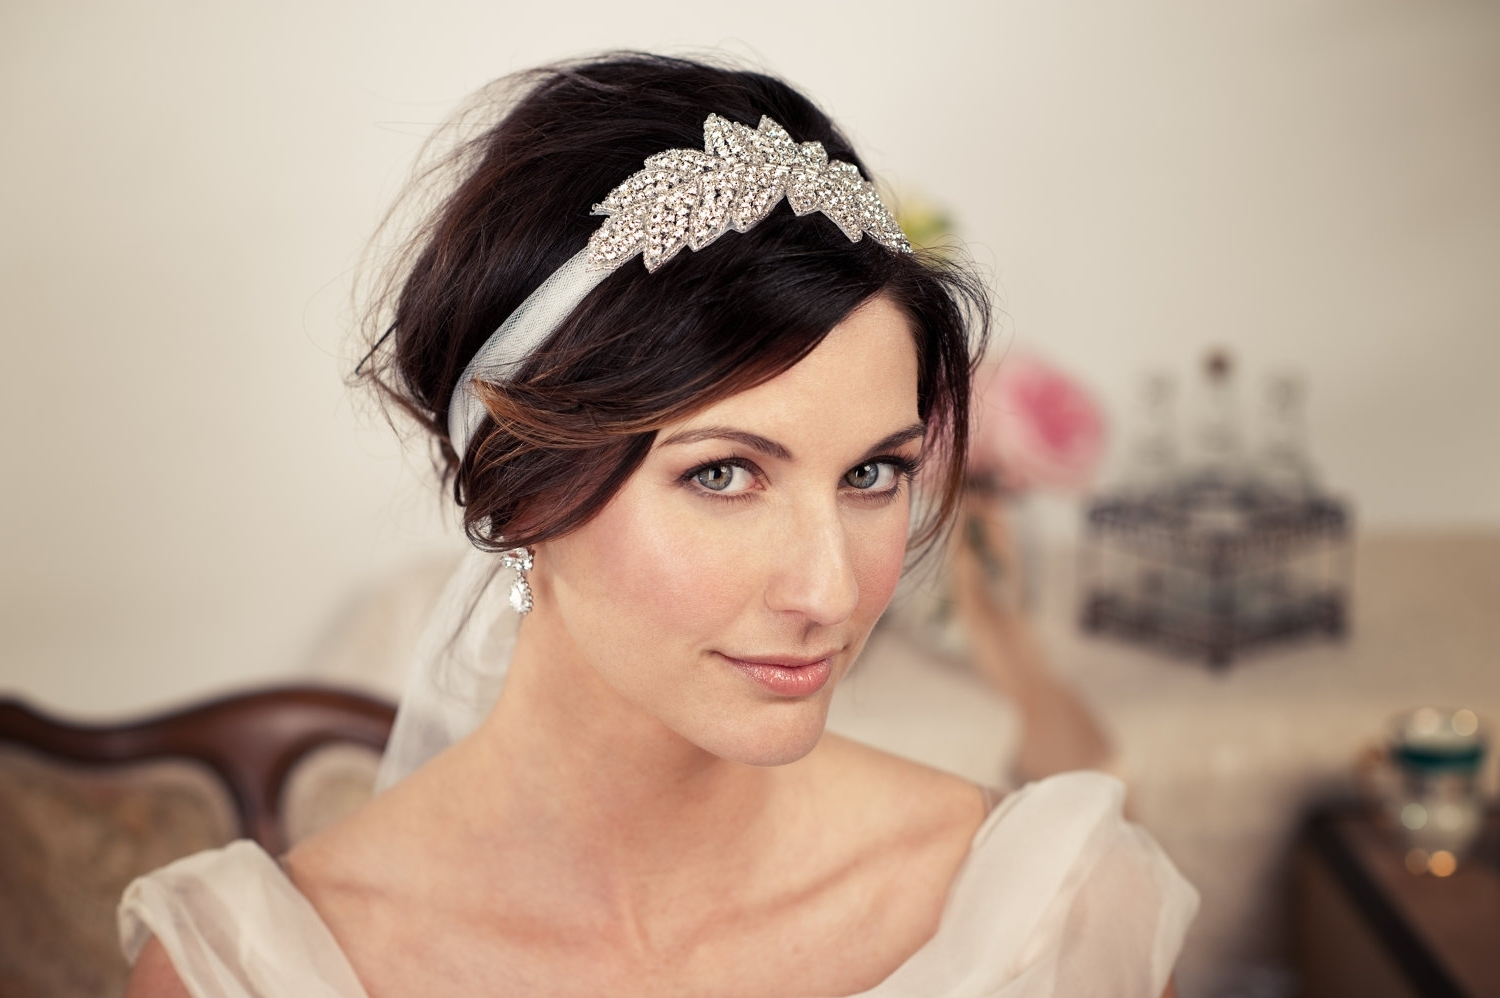 Short Wedding Hairstyles With Headband – Hairstyle For Women & Man Within Most Recently Released Wedding Hairstyles With Headband (View 4 of 15)